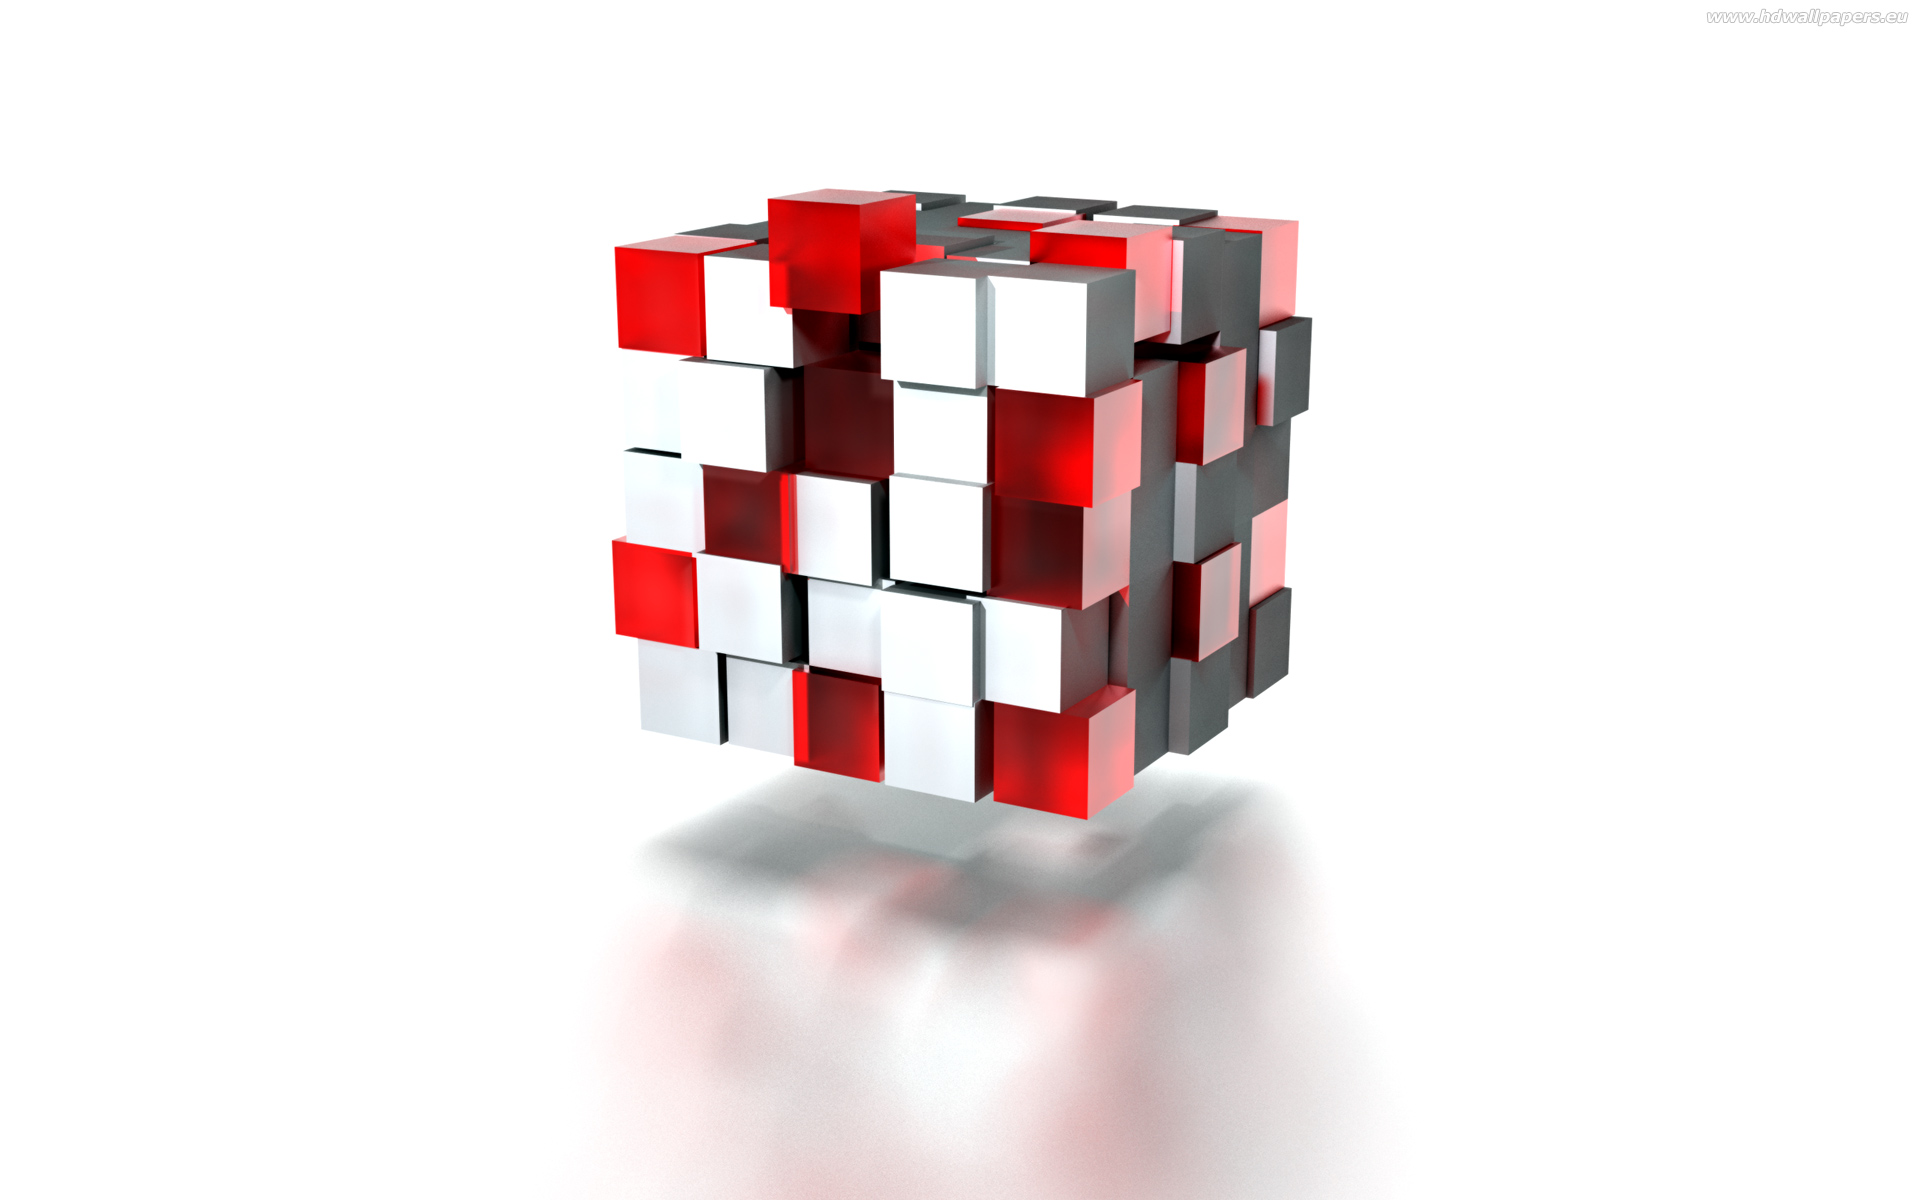 red_cube-1920x1200